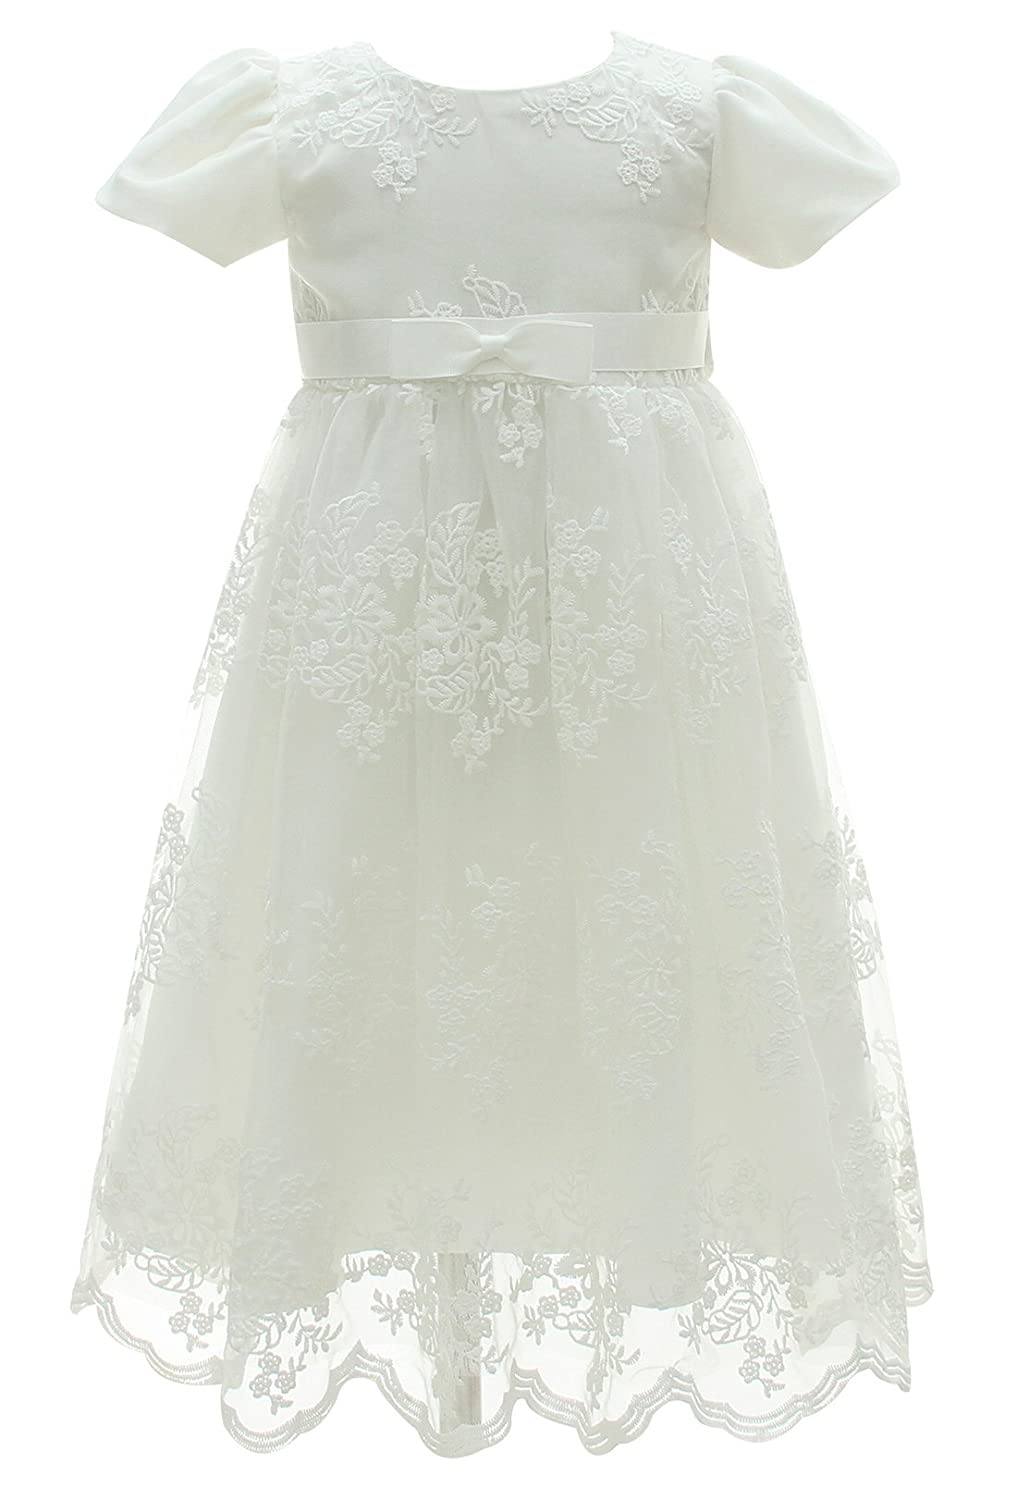 Happy Cherry Baby Girls White Cotton Christening Baptism Gown with Lace Short Sleeve Size 6M - White